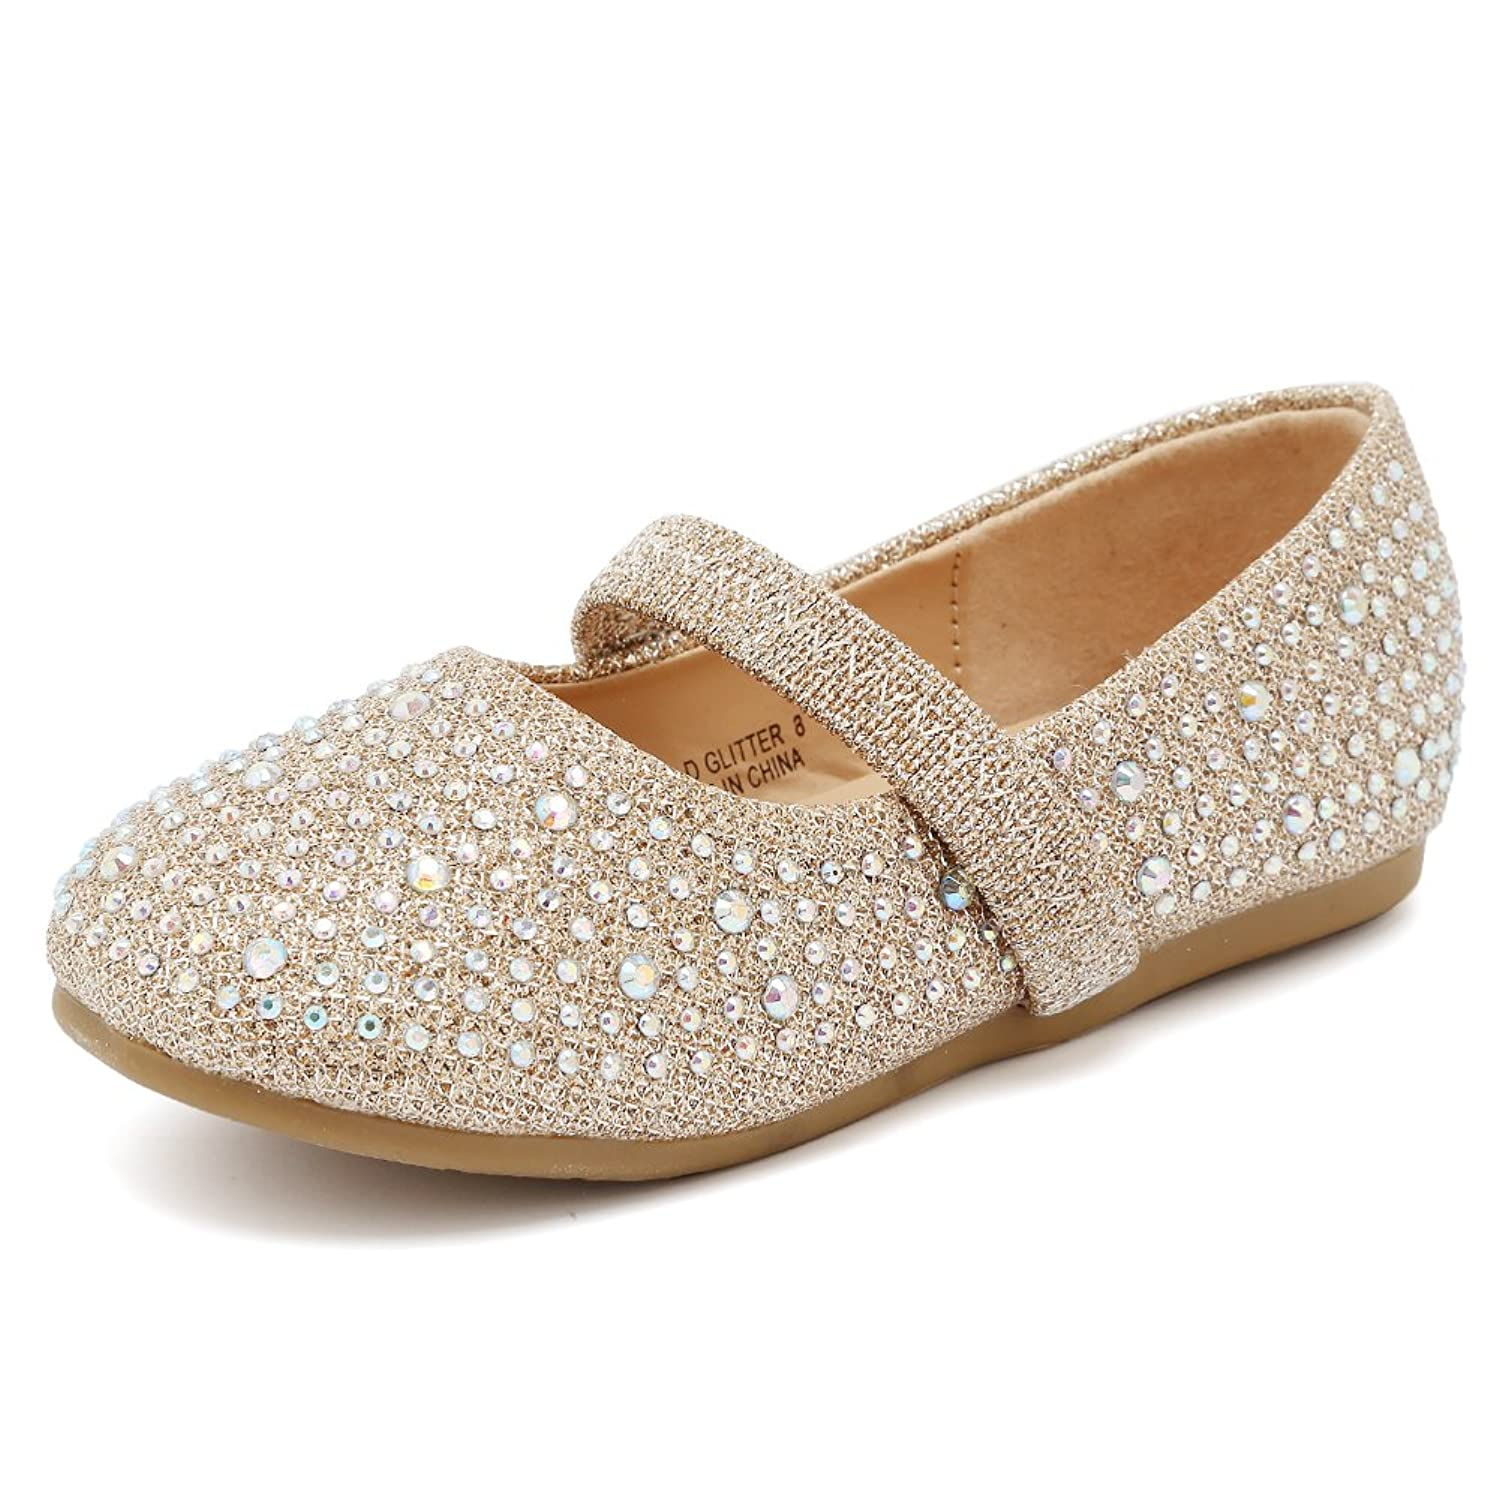 CIOR Toddler Girls Ballet Flats Shoes Beaded Rhinestone Ballerina Bowknot Jane Mary Wedding For Party Princess Dress from Merence